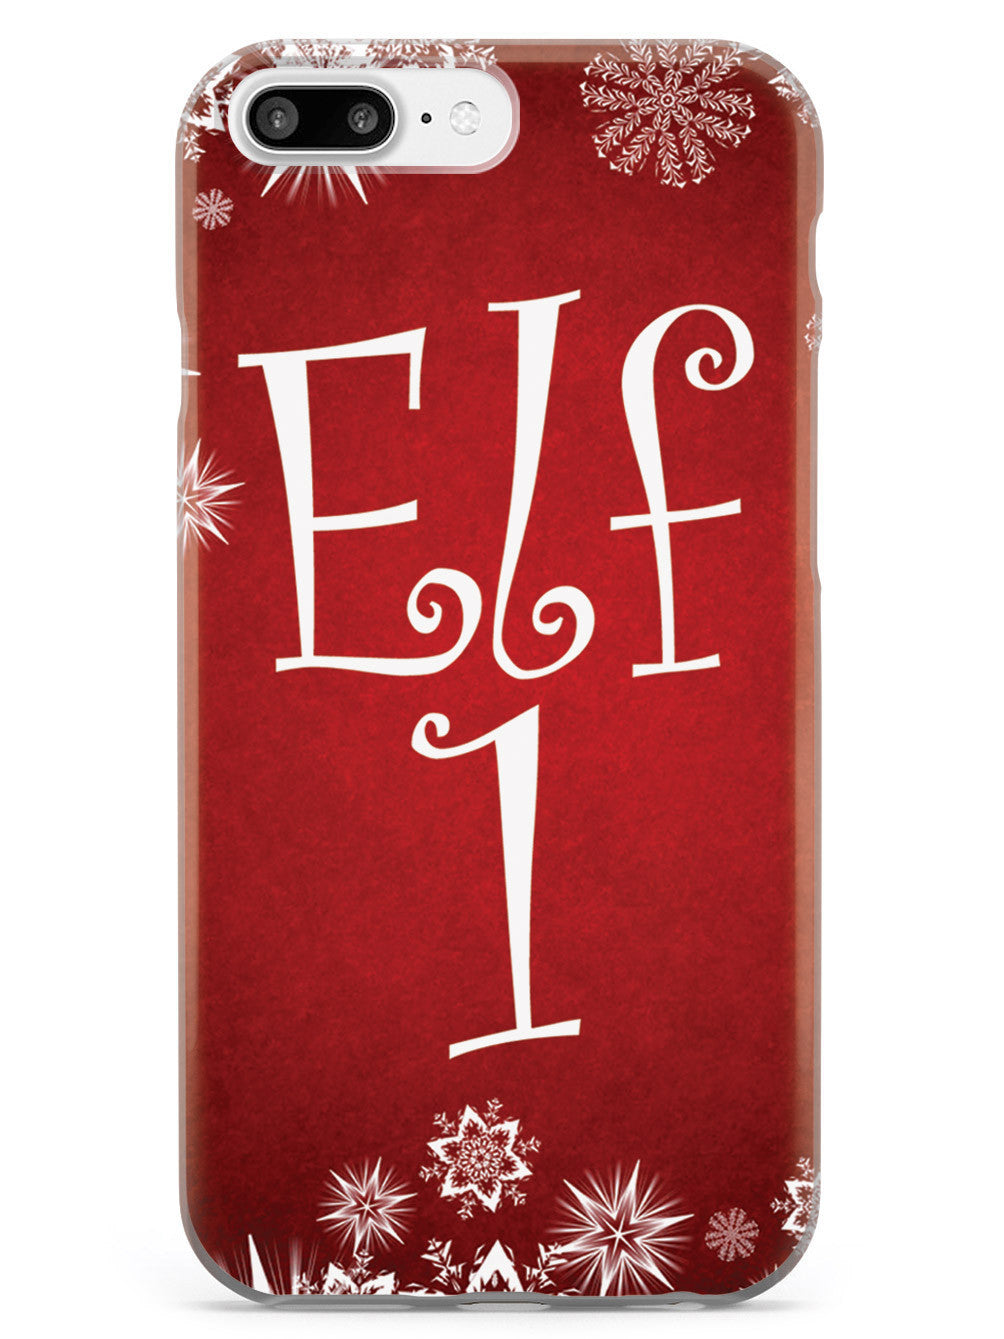 Elf #1 Christmas Case